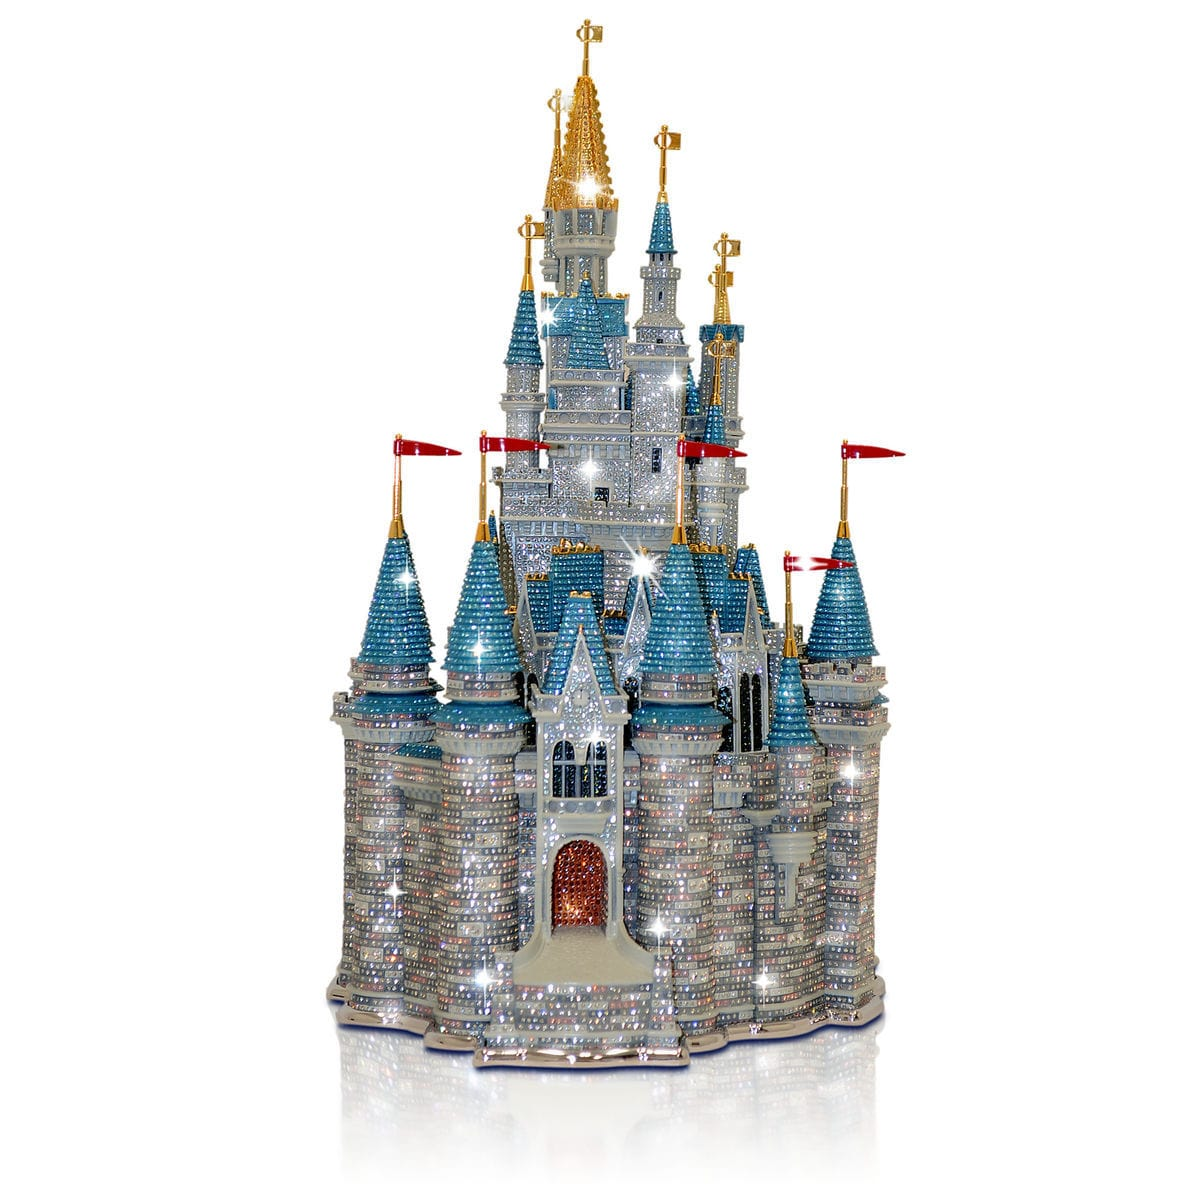 Product Image Of Walt Disney World Cinderella Castle Sculpture By Arribas Brothers